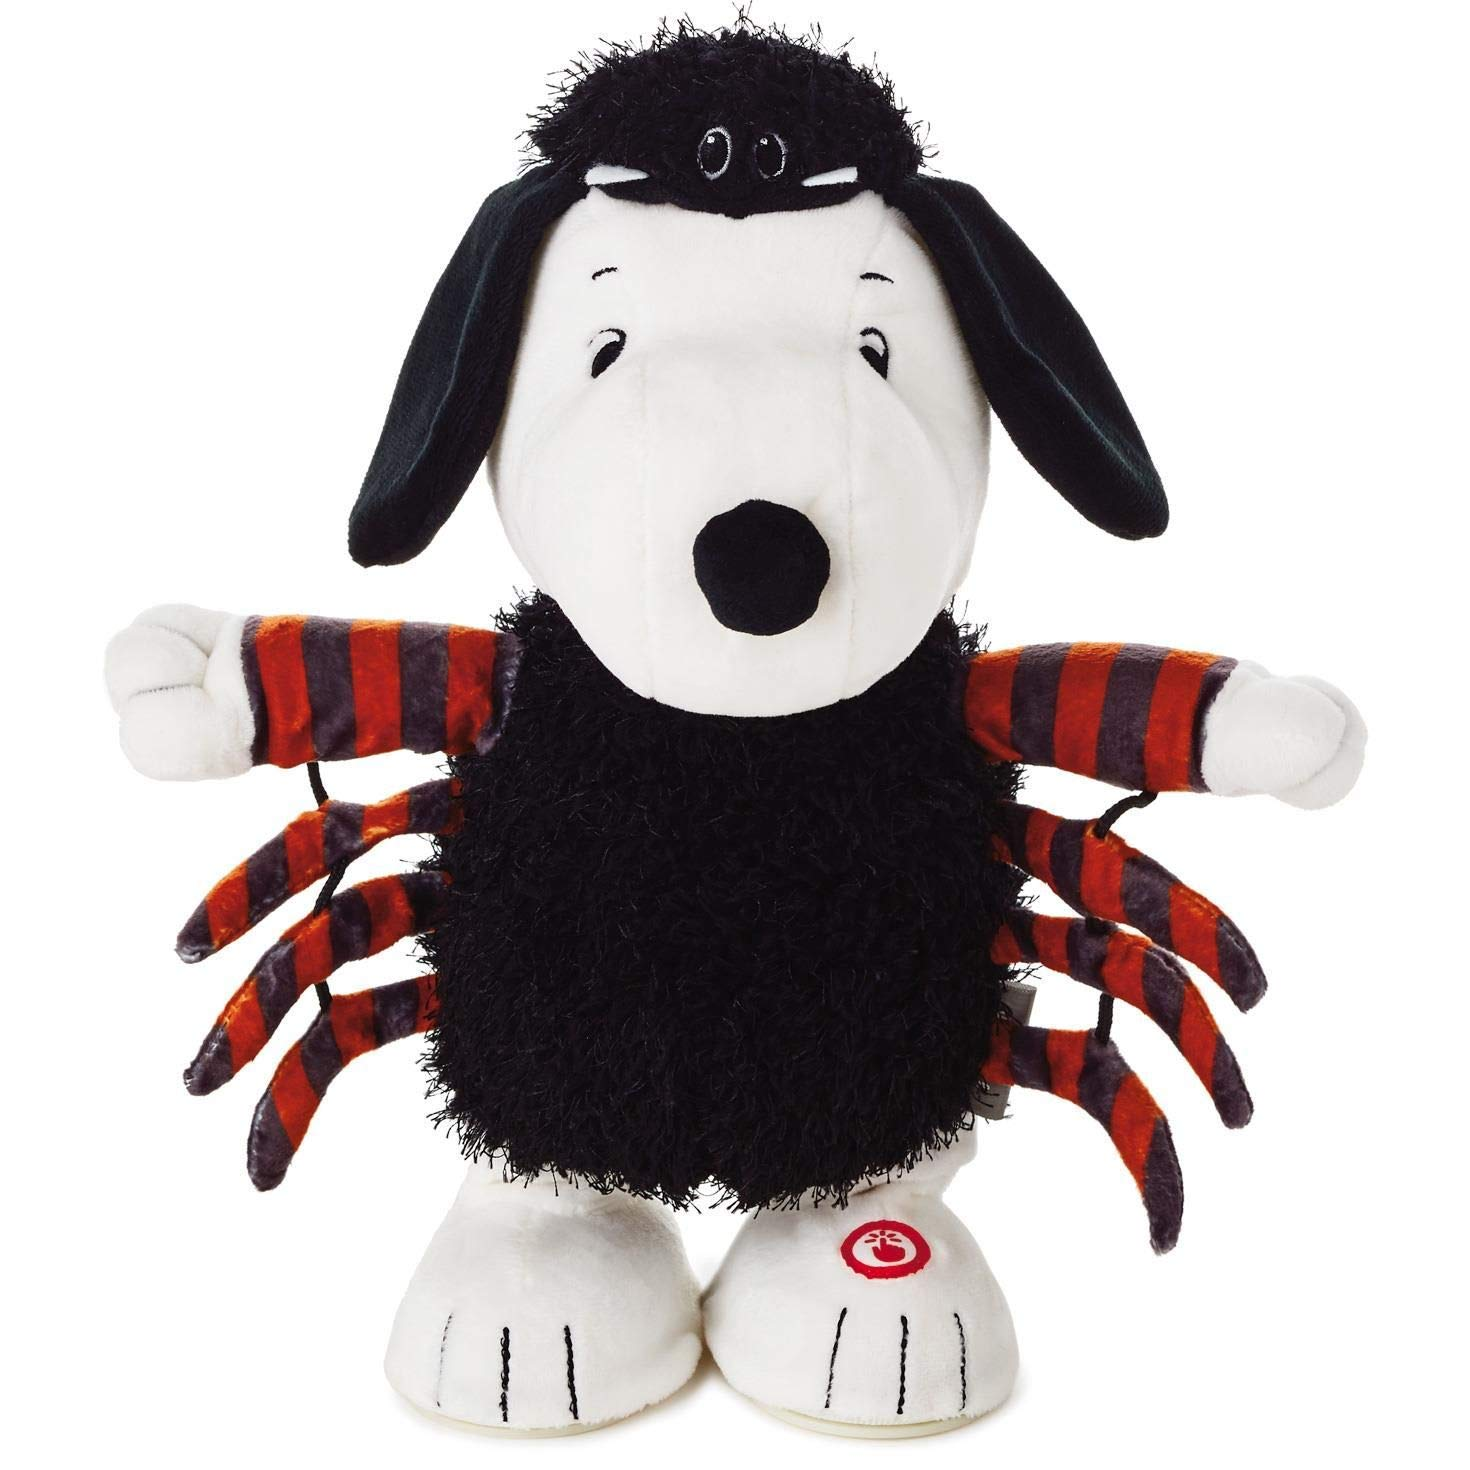 Cheap Stuffed Snoopy Doll Find Stuffed Snoopy Doll Deals On Line At